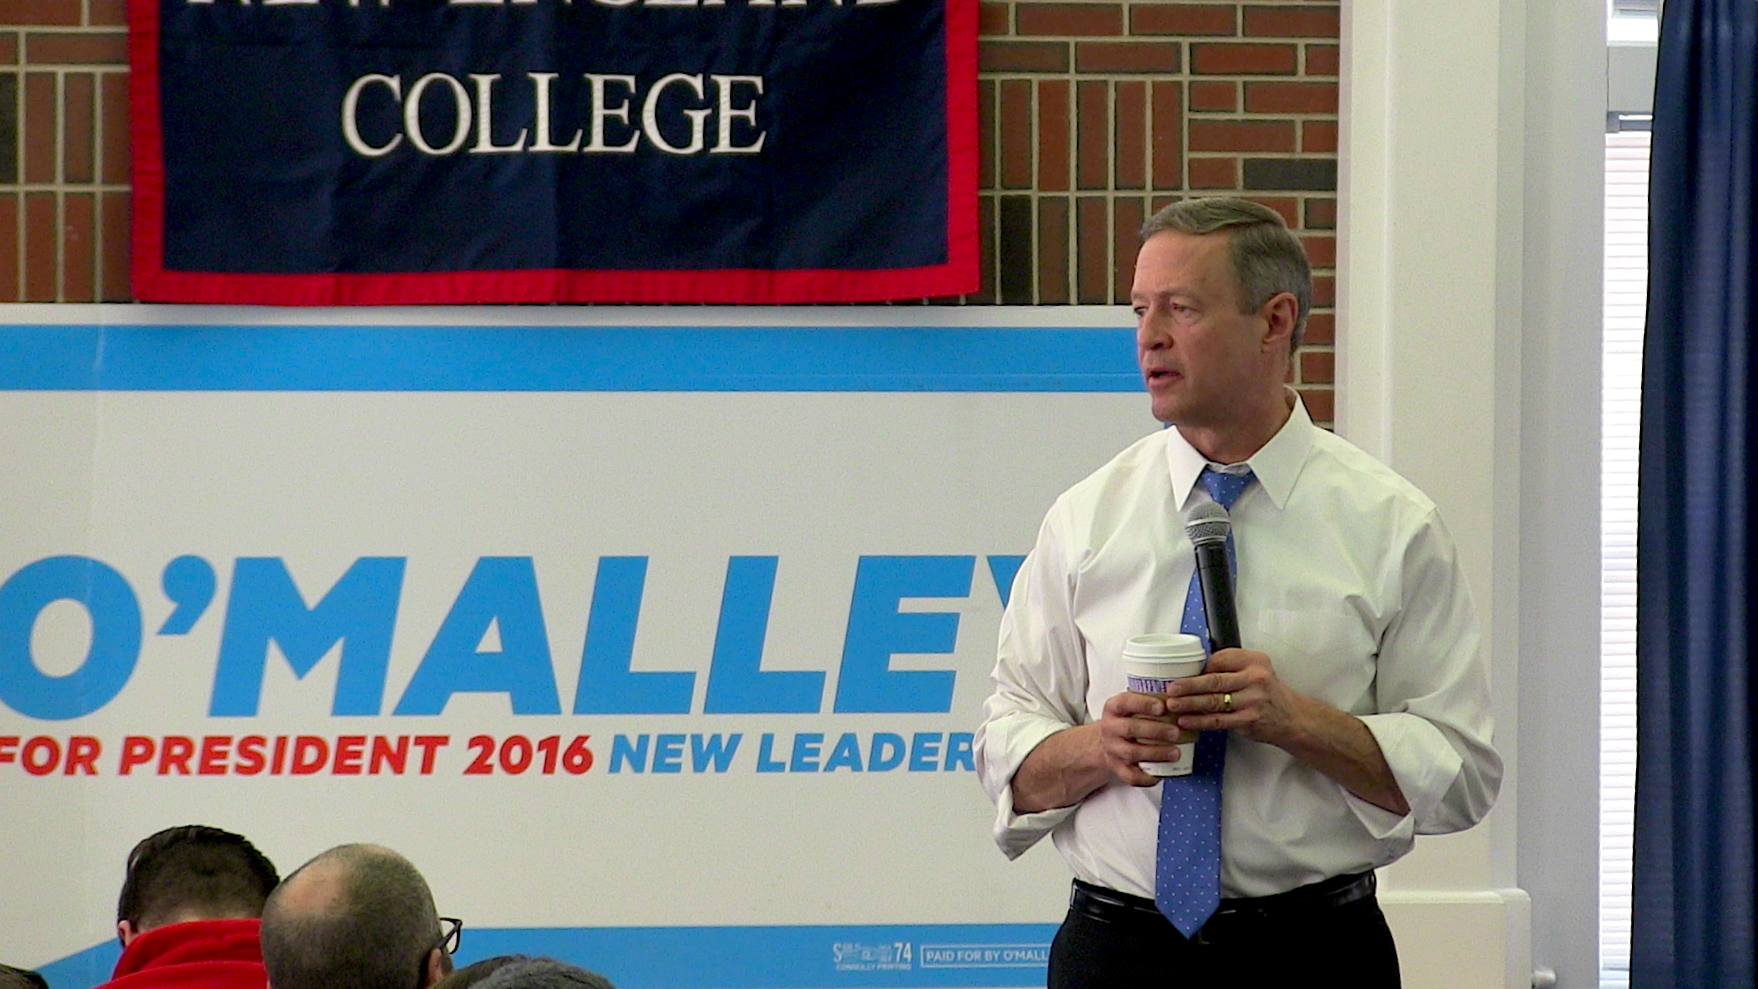 O'Malley speaking to attendees at his town hall. Photo by Andrew Plotch.